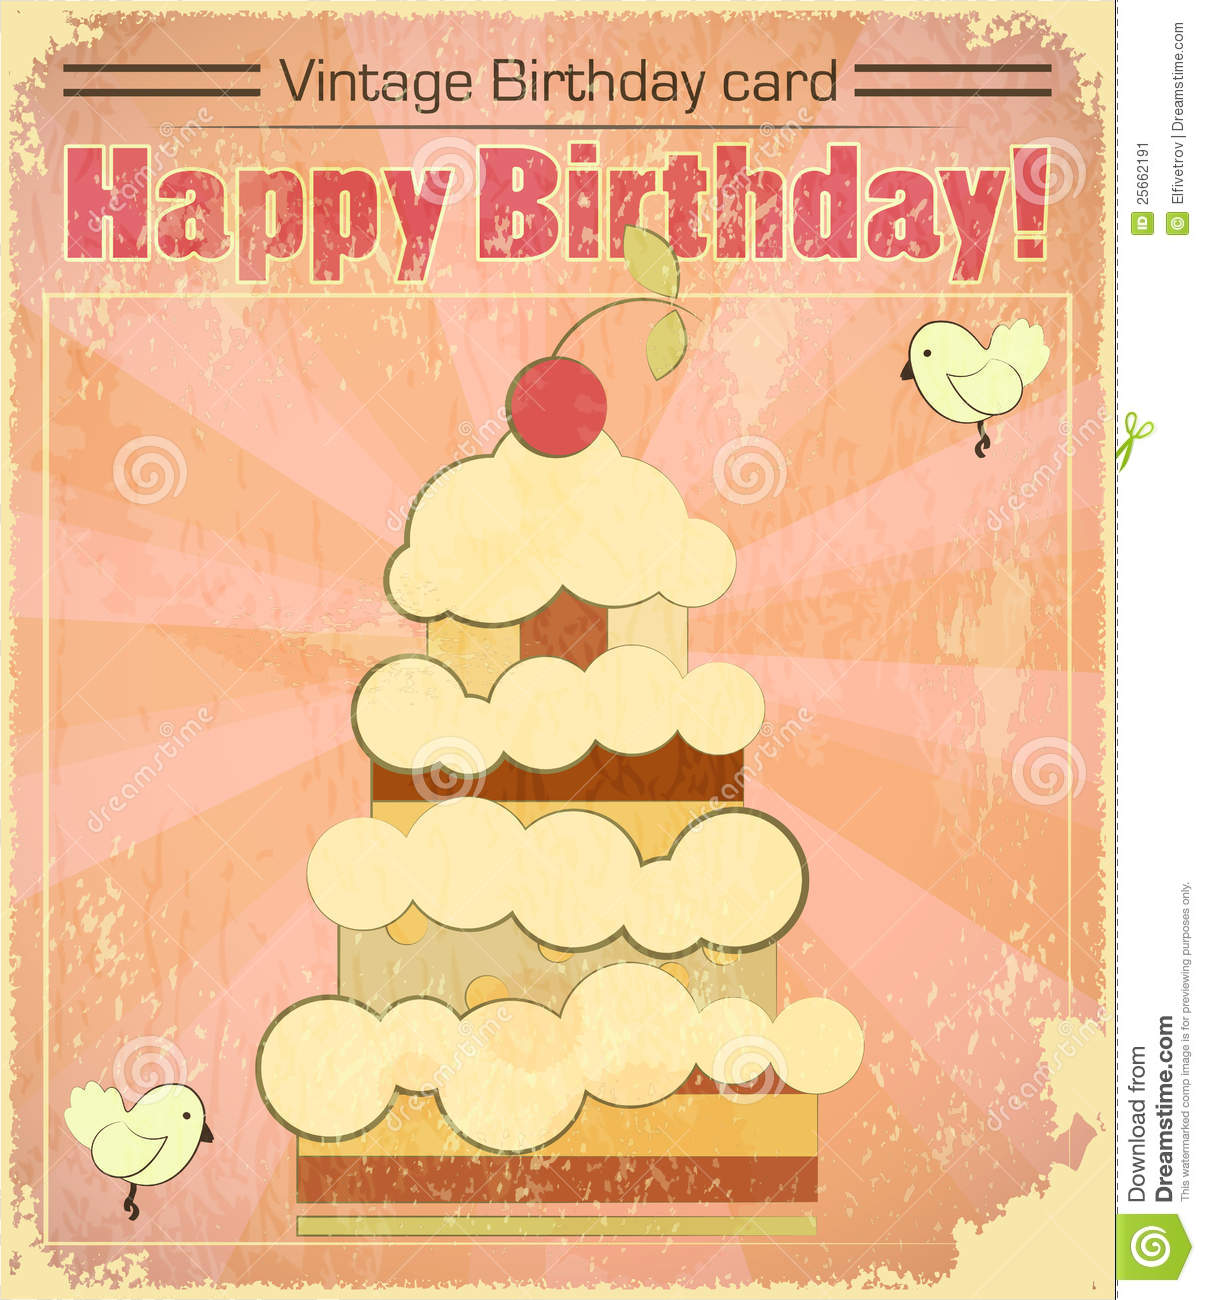 Vintage Birthday Card With Big Berry Cake Stock Image